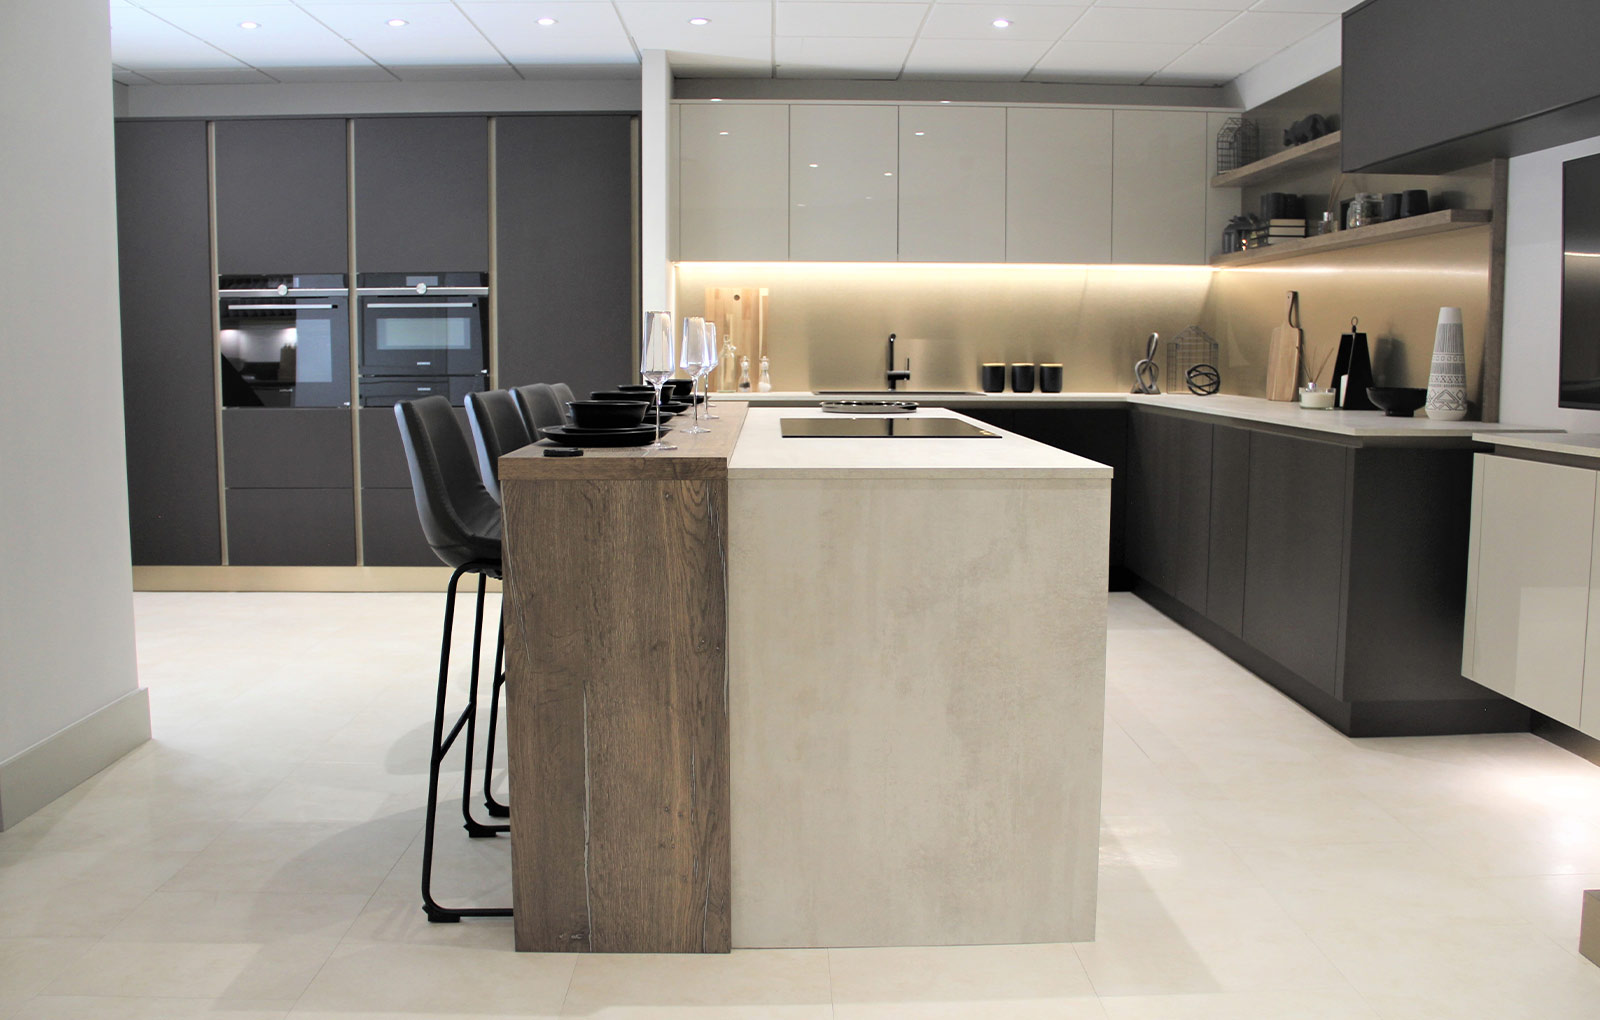 How To Design A Modern Luxury Kitchen Without Breaking The Bank Kitchen Inspiration Blog Masterclass Kitchens